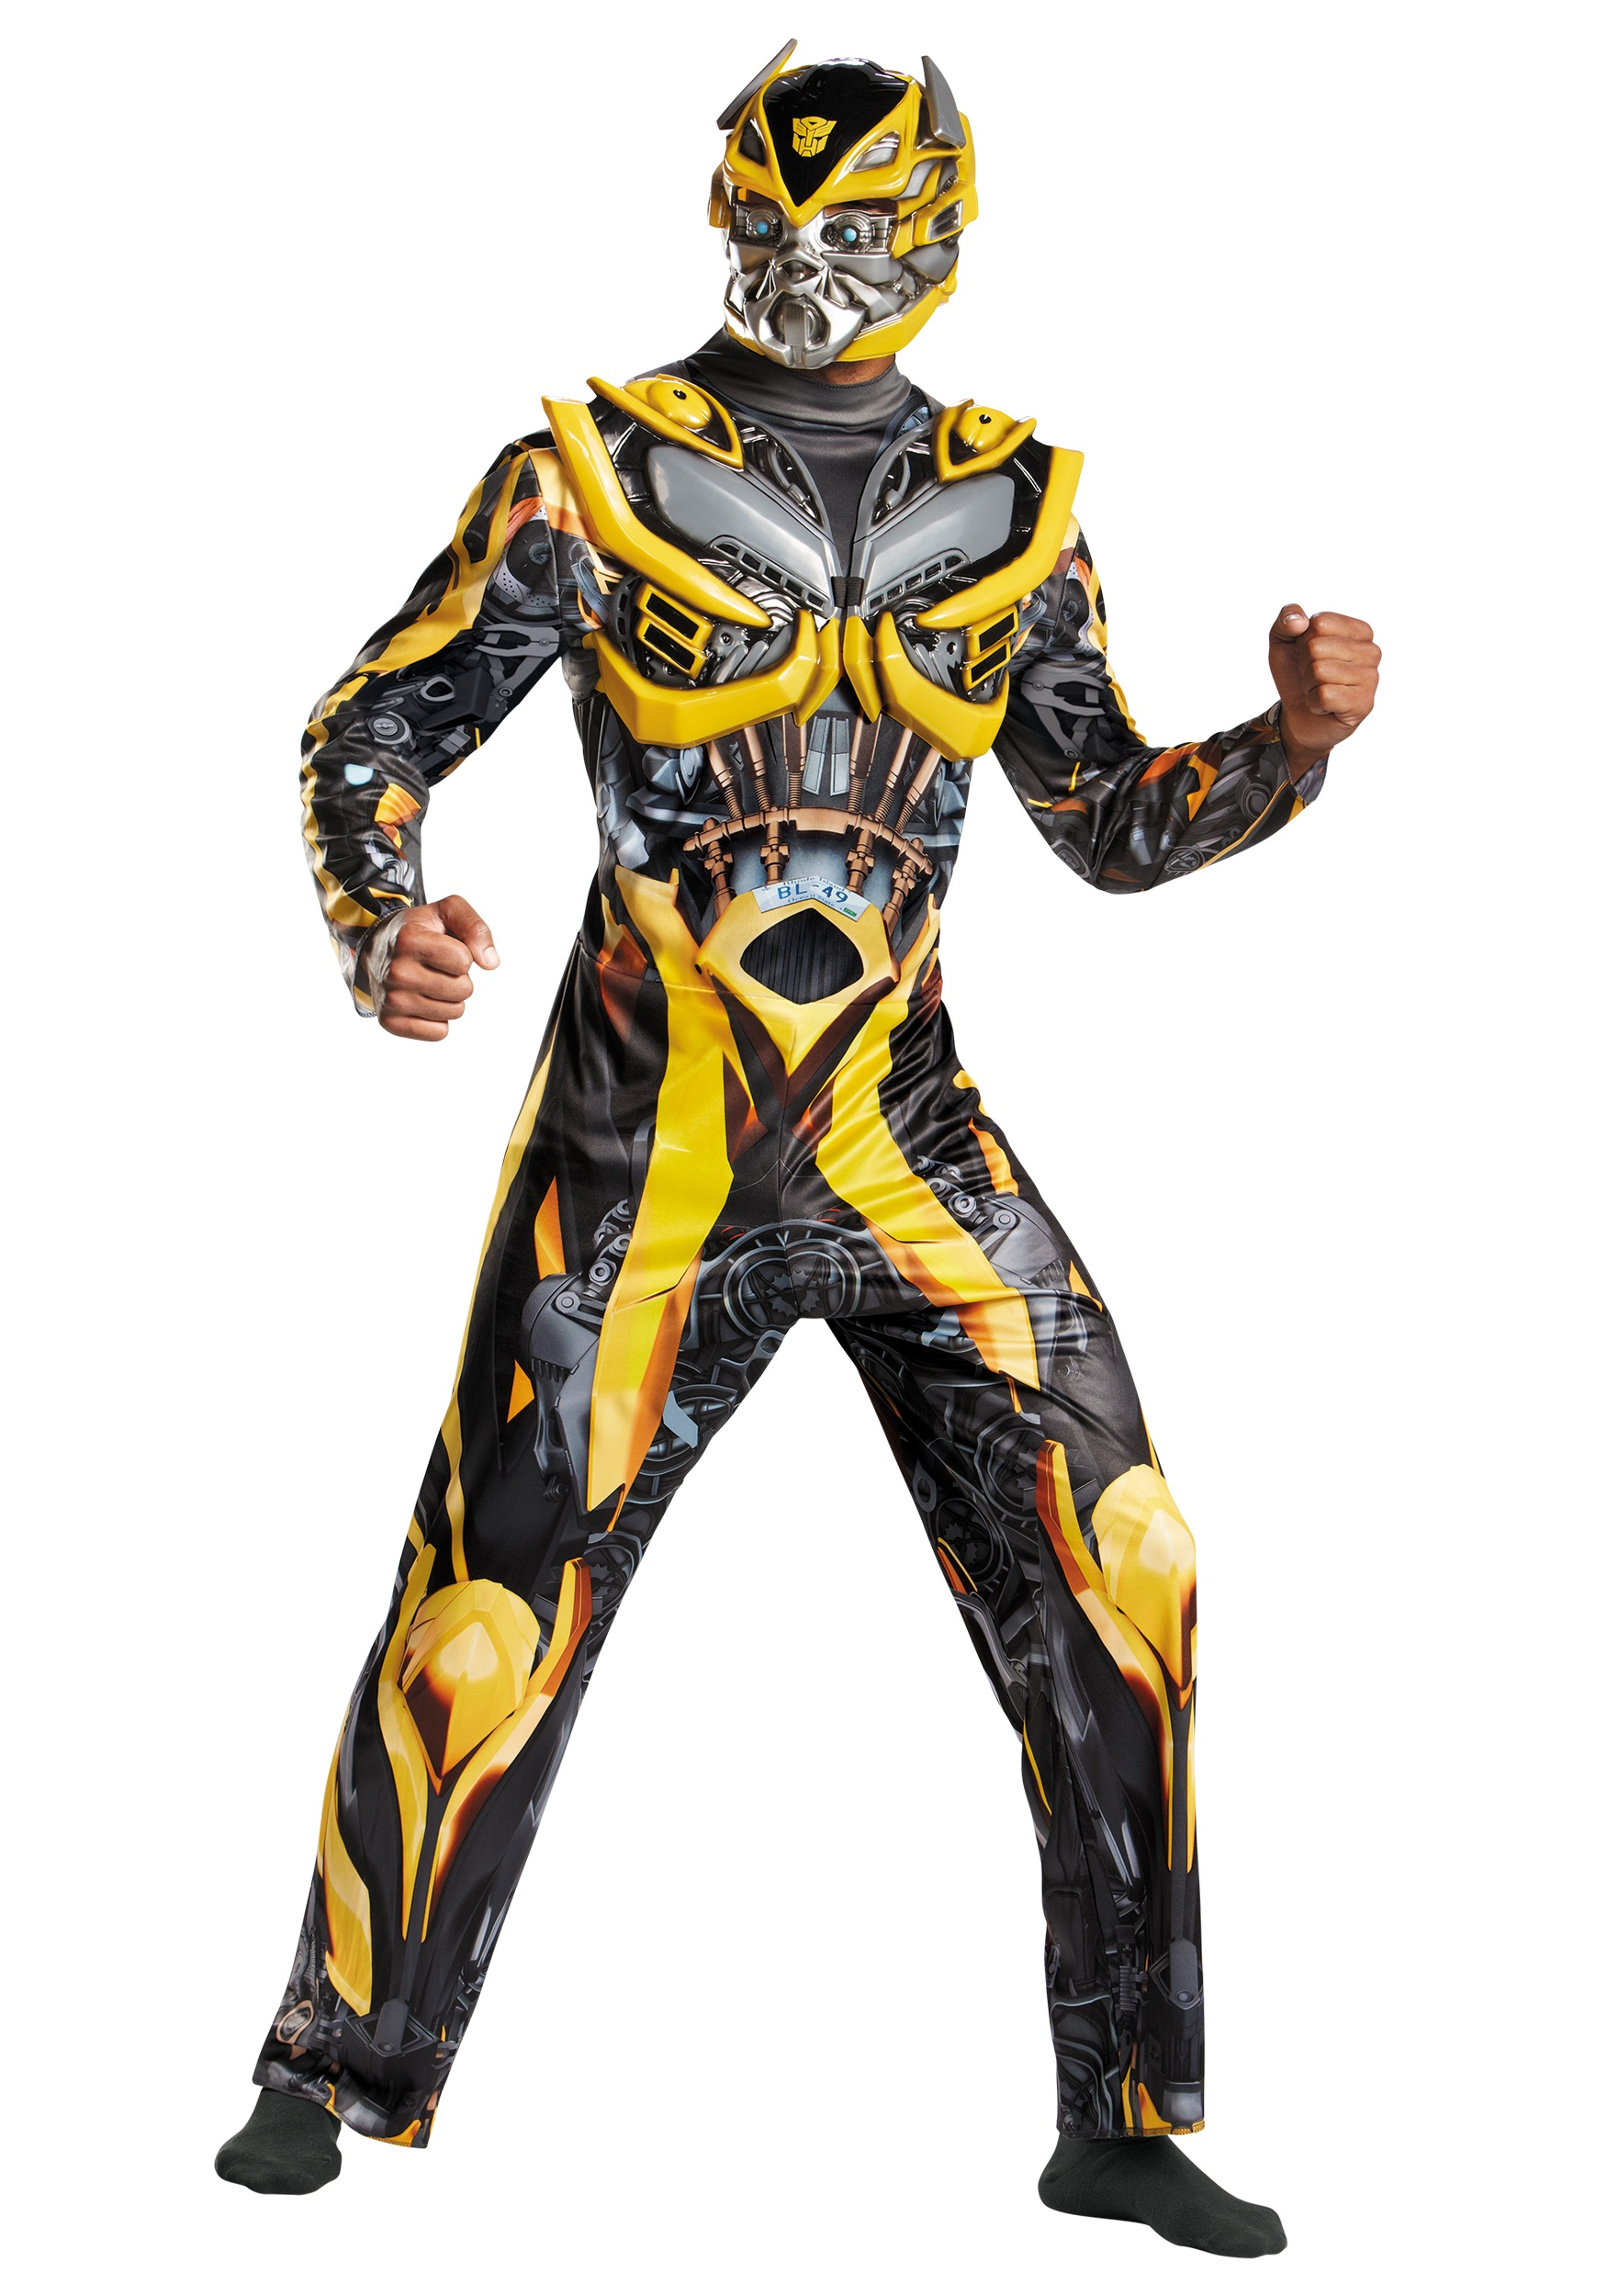 Adult Transformers 4 Deluxe Bumblebee Costume